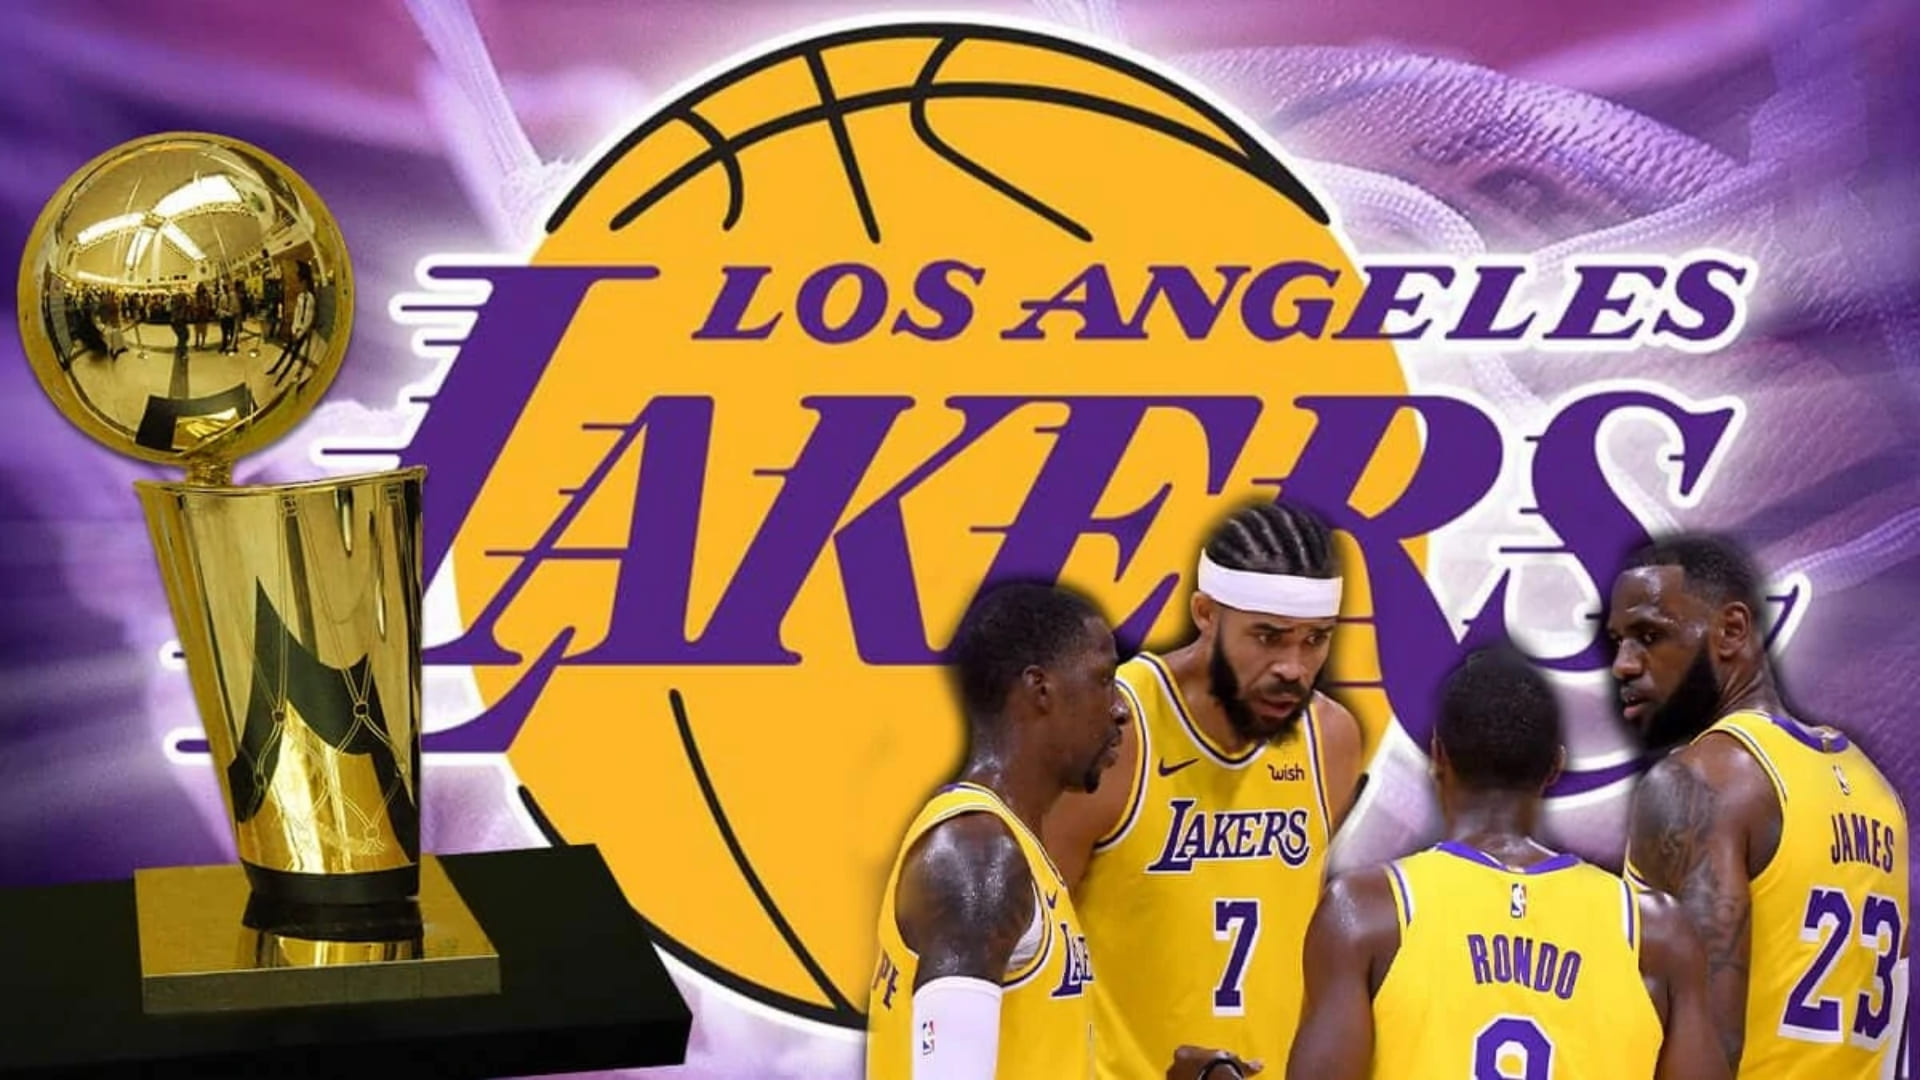 Lakers championships wallpapers